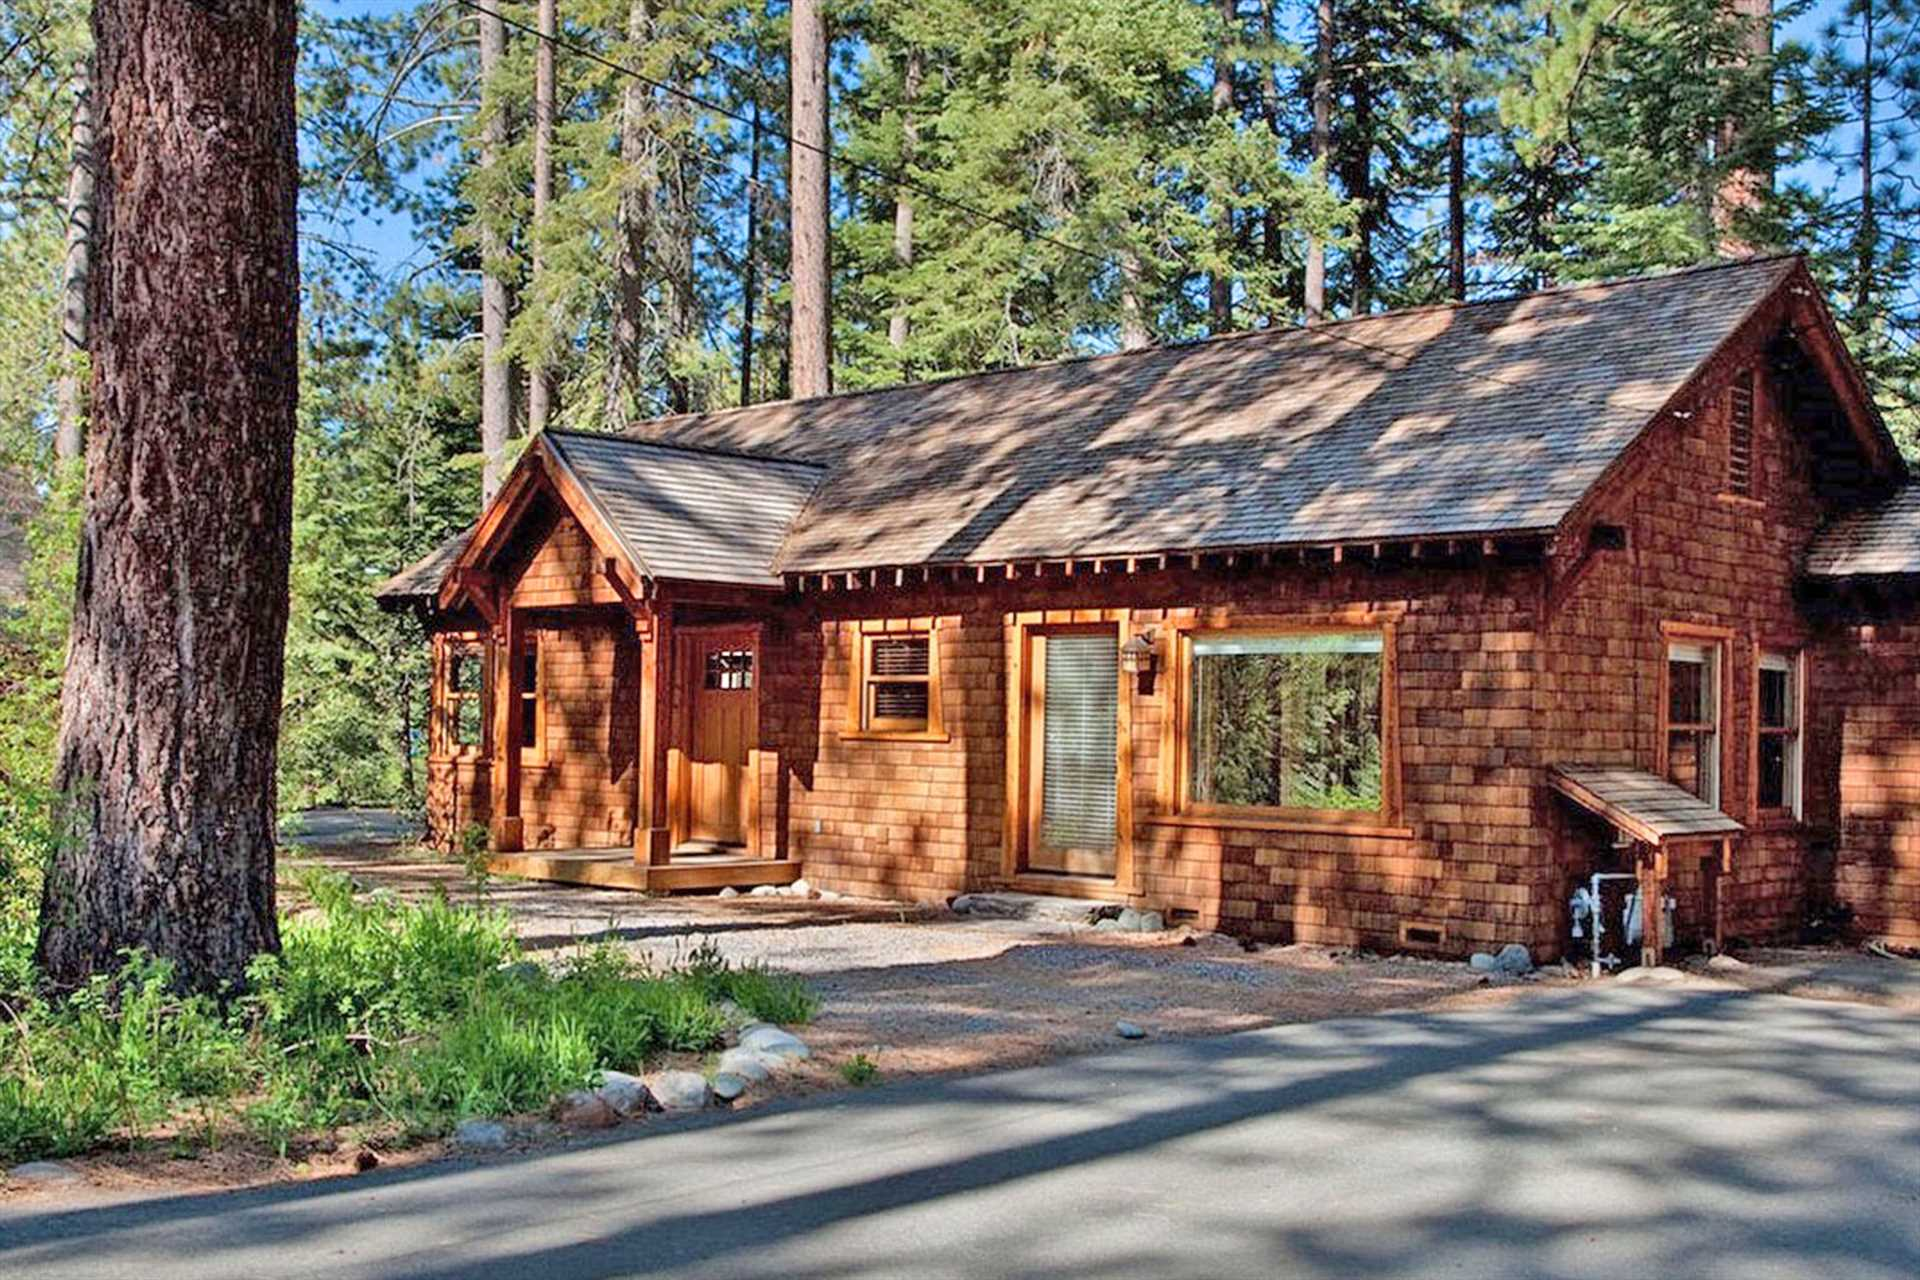 bliss tahoe house log in via cabins lake cabin smallhousebliss gallery small